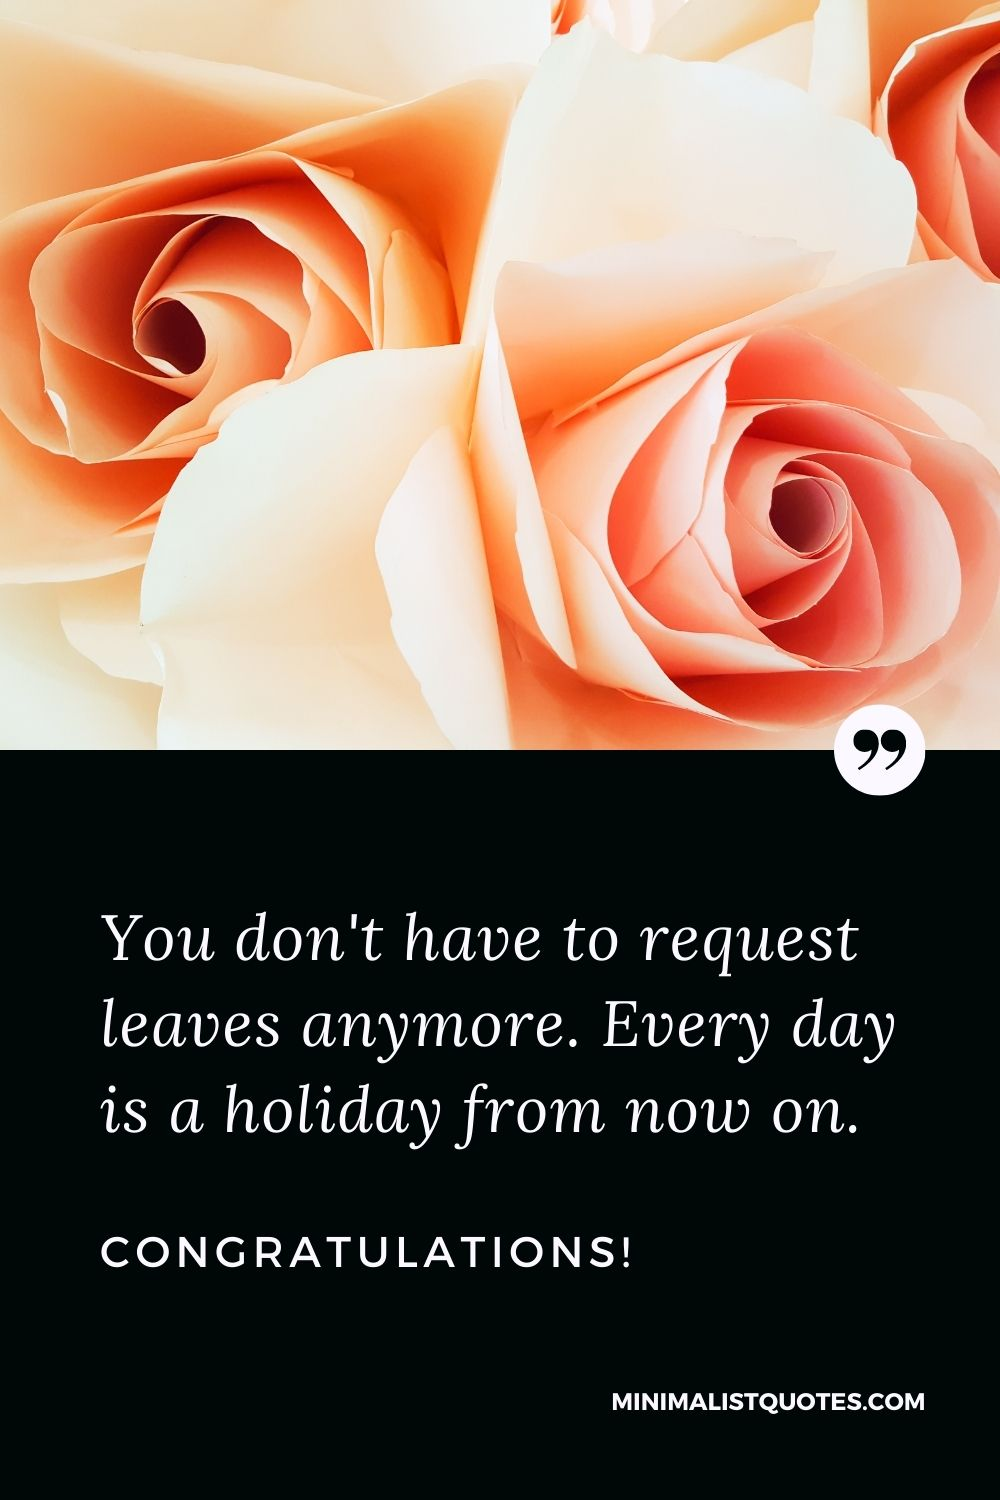 Retirement Wish, Quote & Message With Image: You don't have to request leaves anymore. Every day is a holiday from now on. Congratulations!